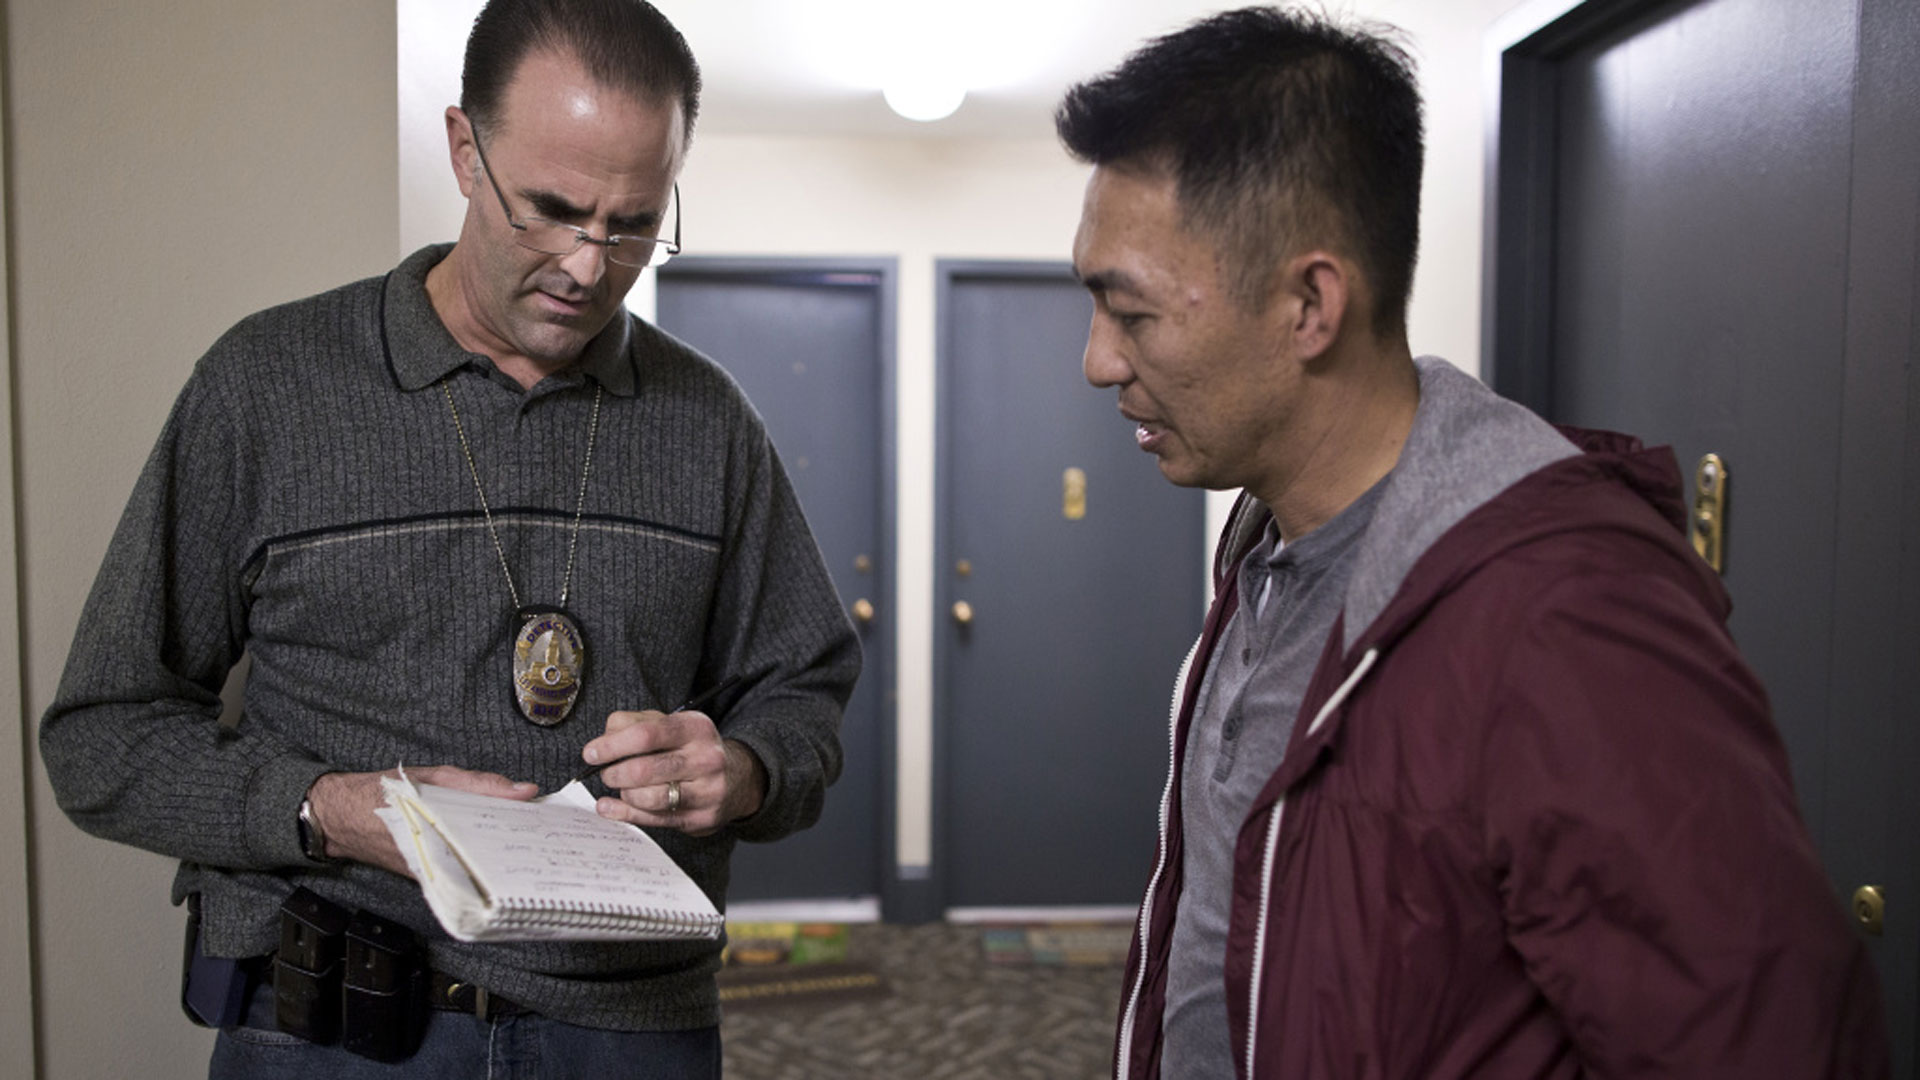 Detective Jim Hoffman (L) checks in with Officer Dennis Nguyen during a call at Park La Brea Apartments on Dec. 11, 2014. Nguyen and Hoffman are part of the LAPD's Mental Evaluation Unit.